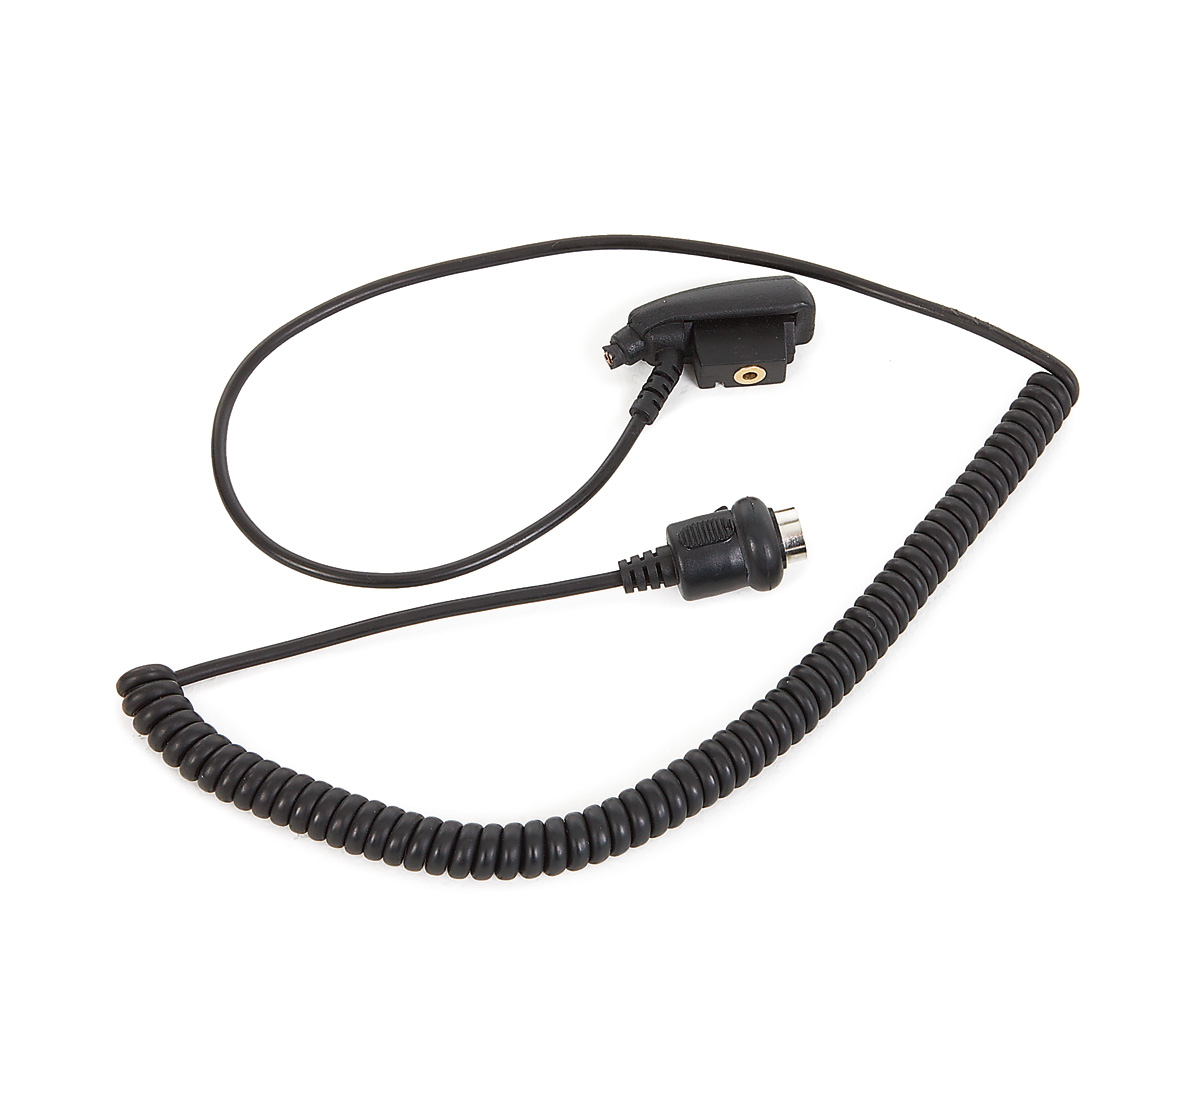 Motorcycle Rider Communication Cable